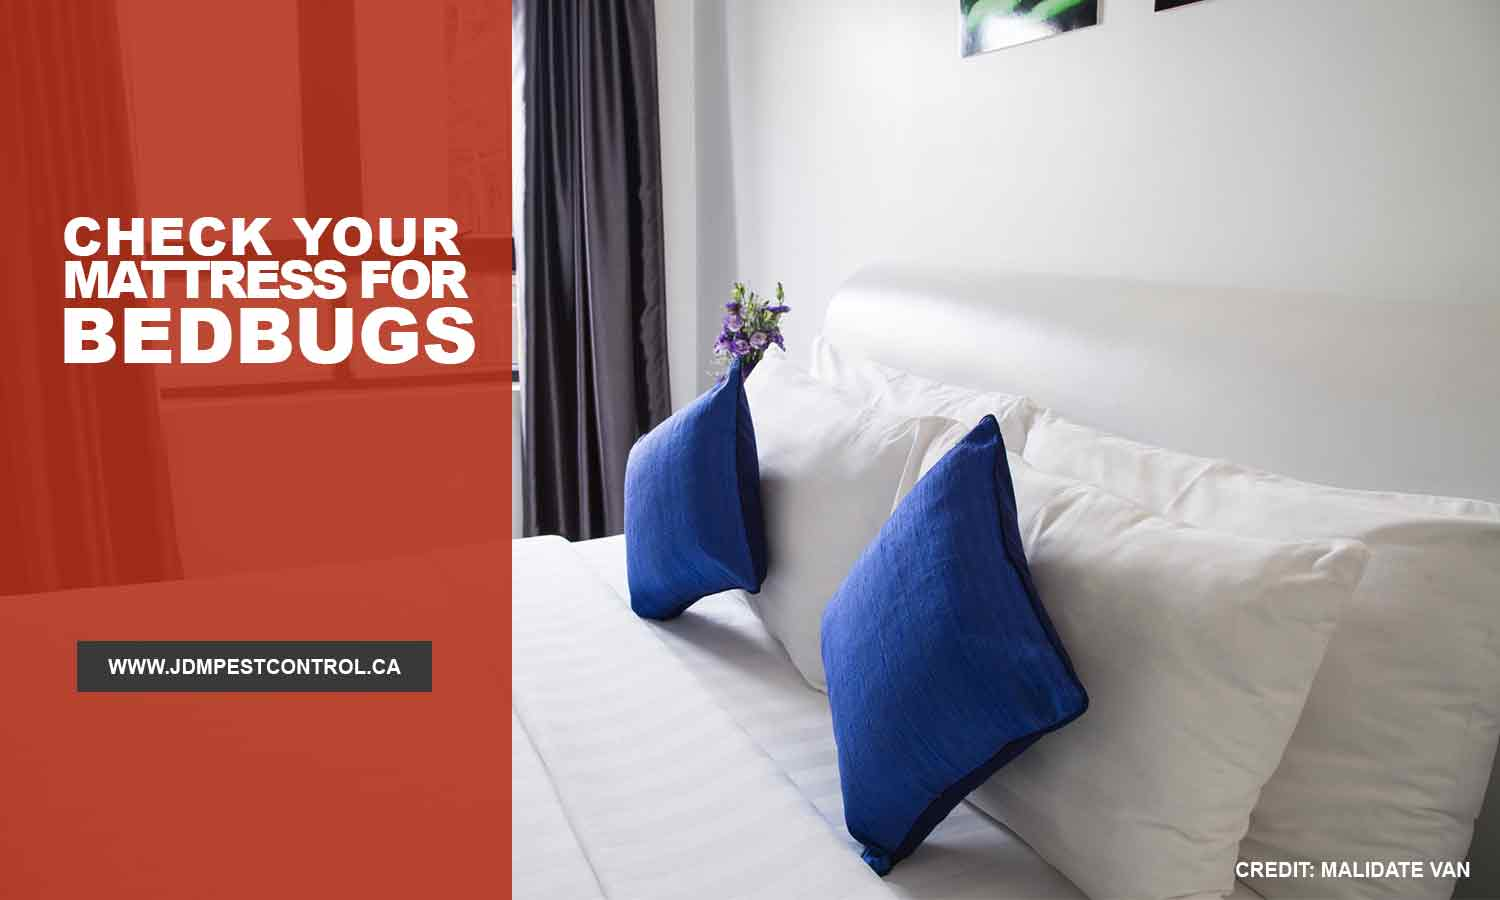 Check your mattress for bedbugs